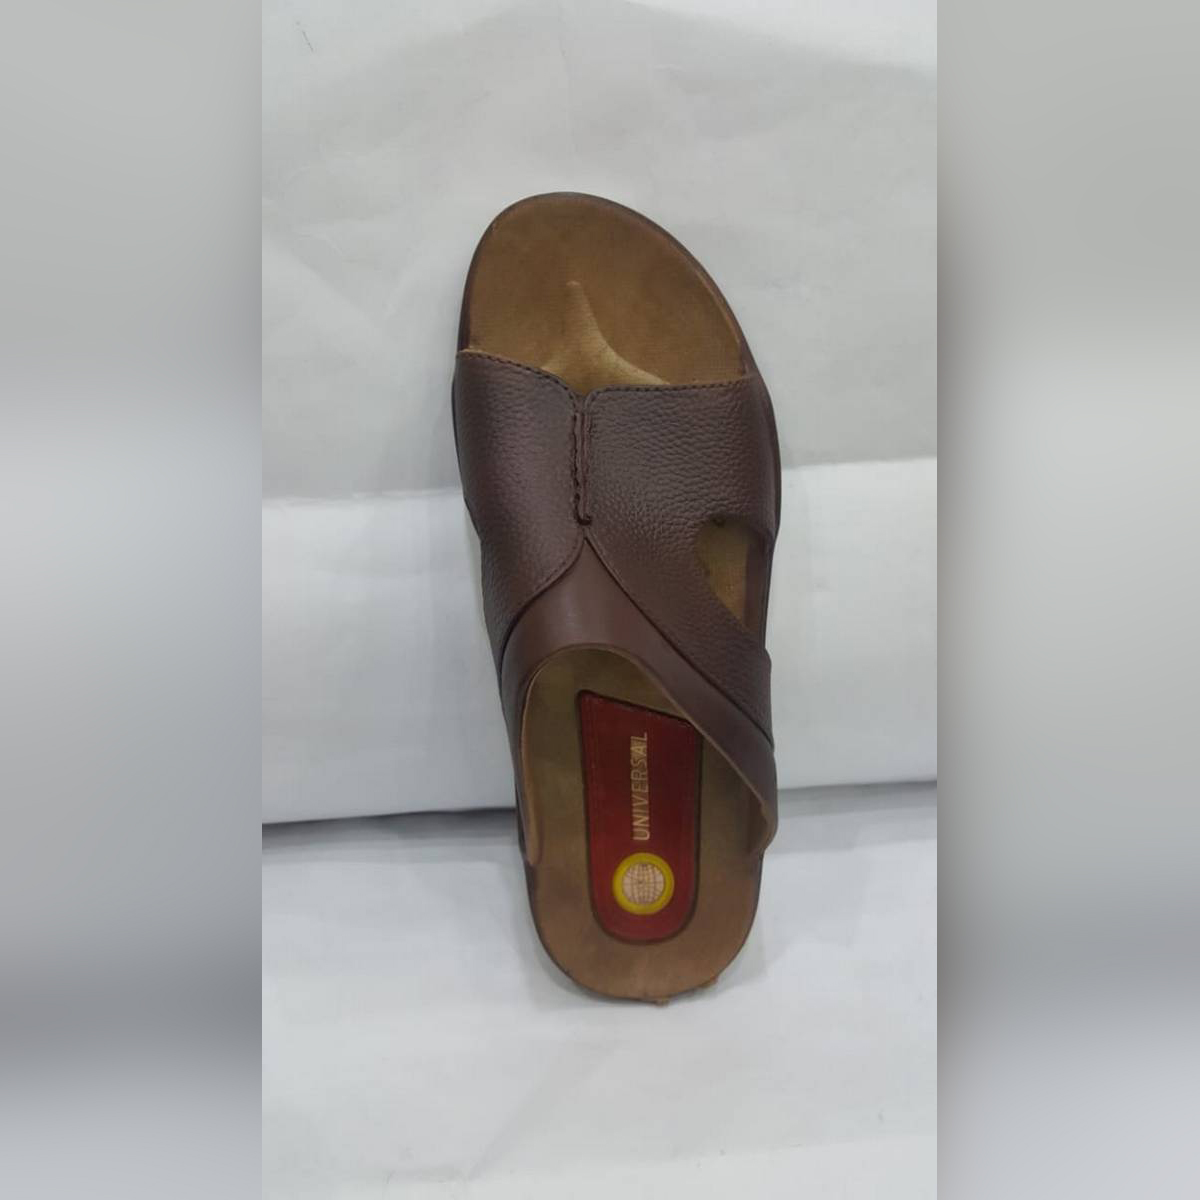 UNIVERSAL CASUAL BROWN CHAPPAL FOR MEN LATEST ARRIVAL WITH FABOLUS STUFF